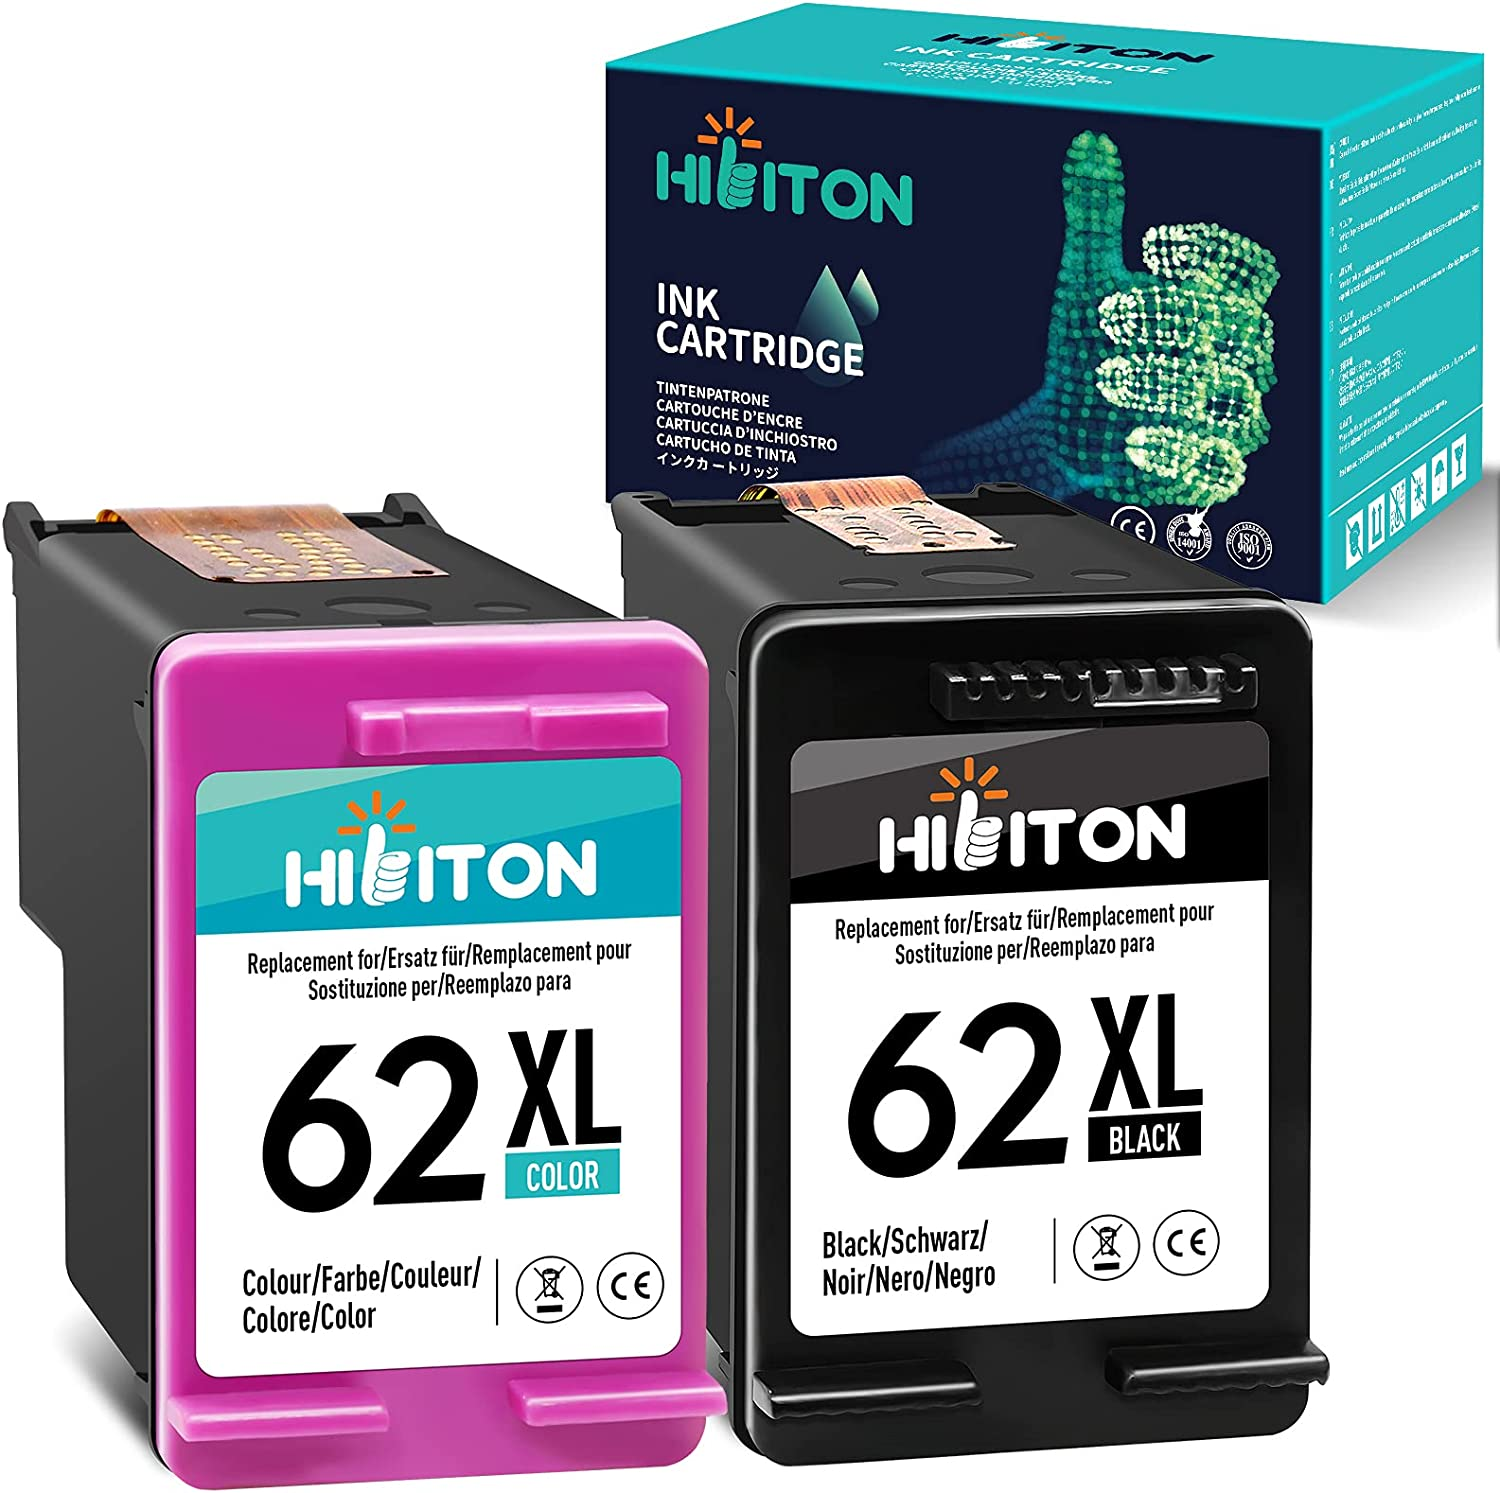 HibiTon Remanufactured Ink Cartridge Replacement for HP 62XL 62 XL Work with Envy 7640 5660 5540 5661 5642 5640 5640 5663 5544 5542 5549 OfficeJet 5740 250 5745 5746 Printer (Black,Tri-Color) 2 Pack